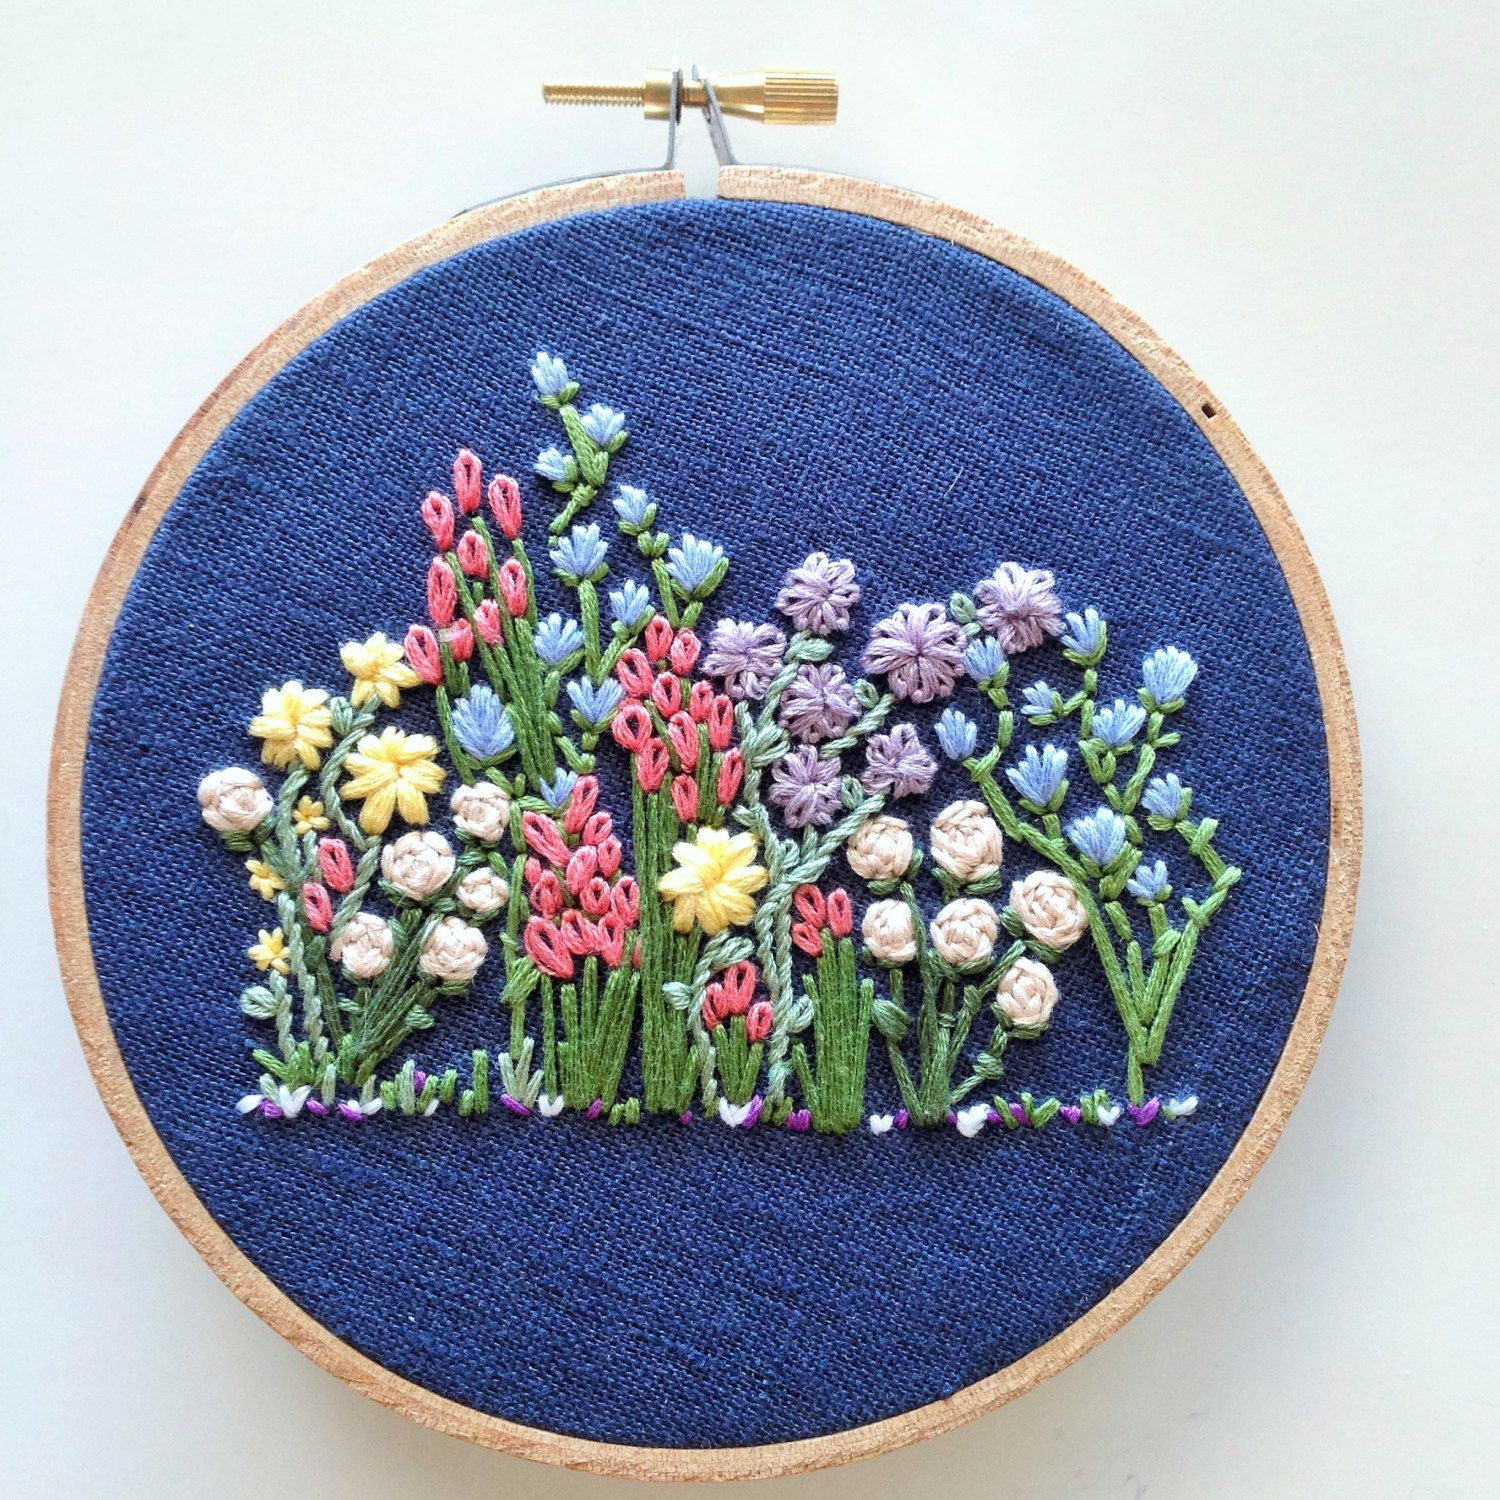 Hand embroidery pattern flower embroidery hoop pattern embroidery